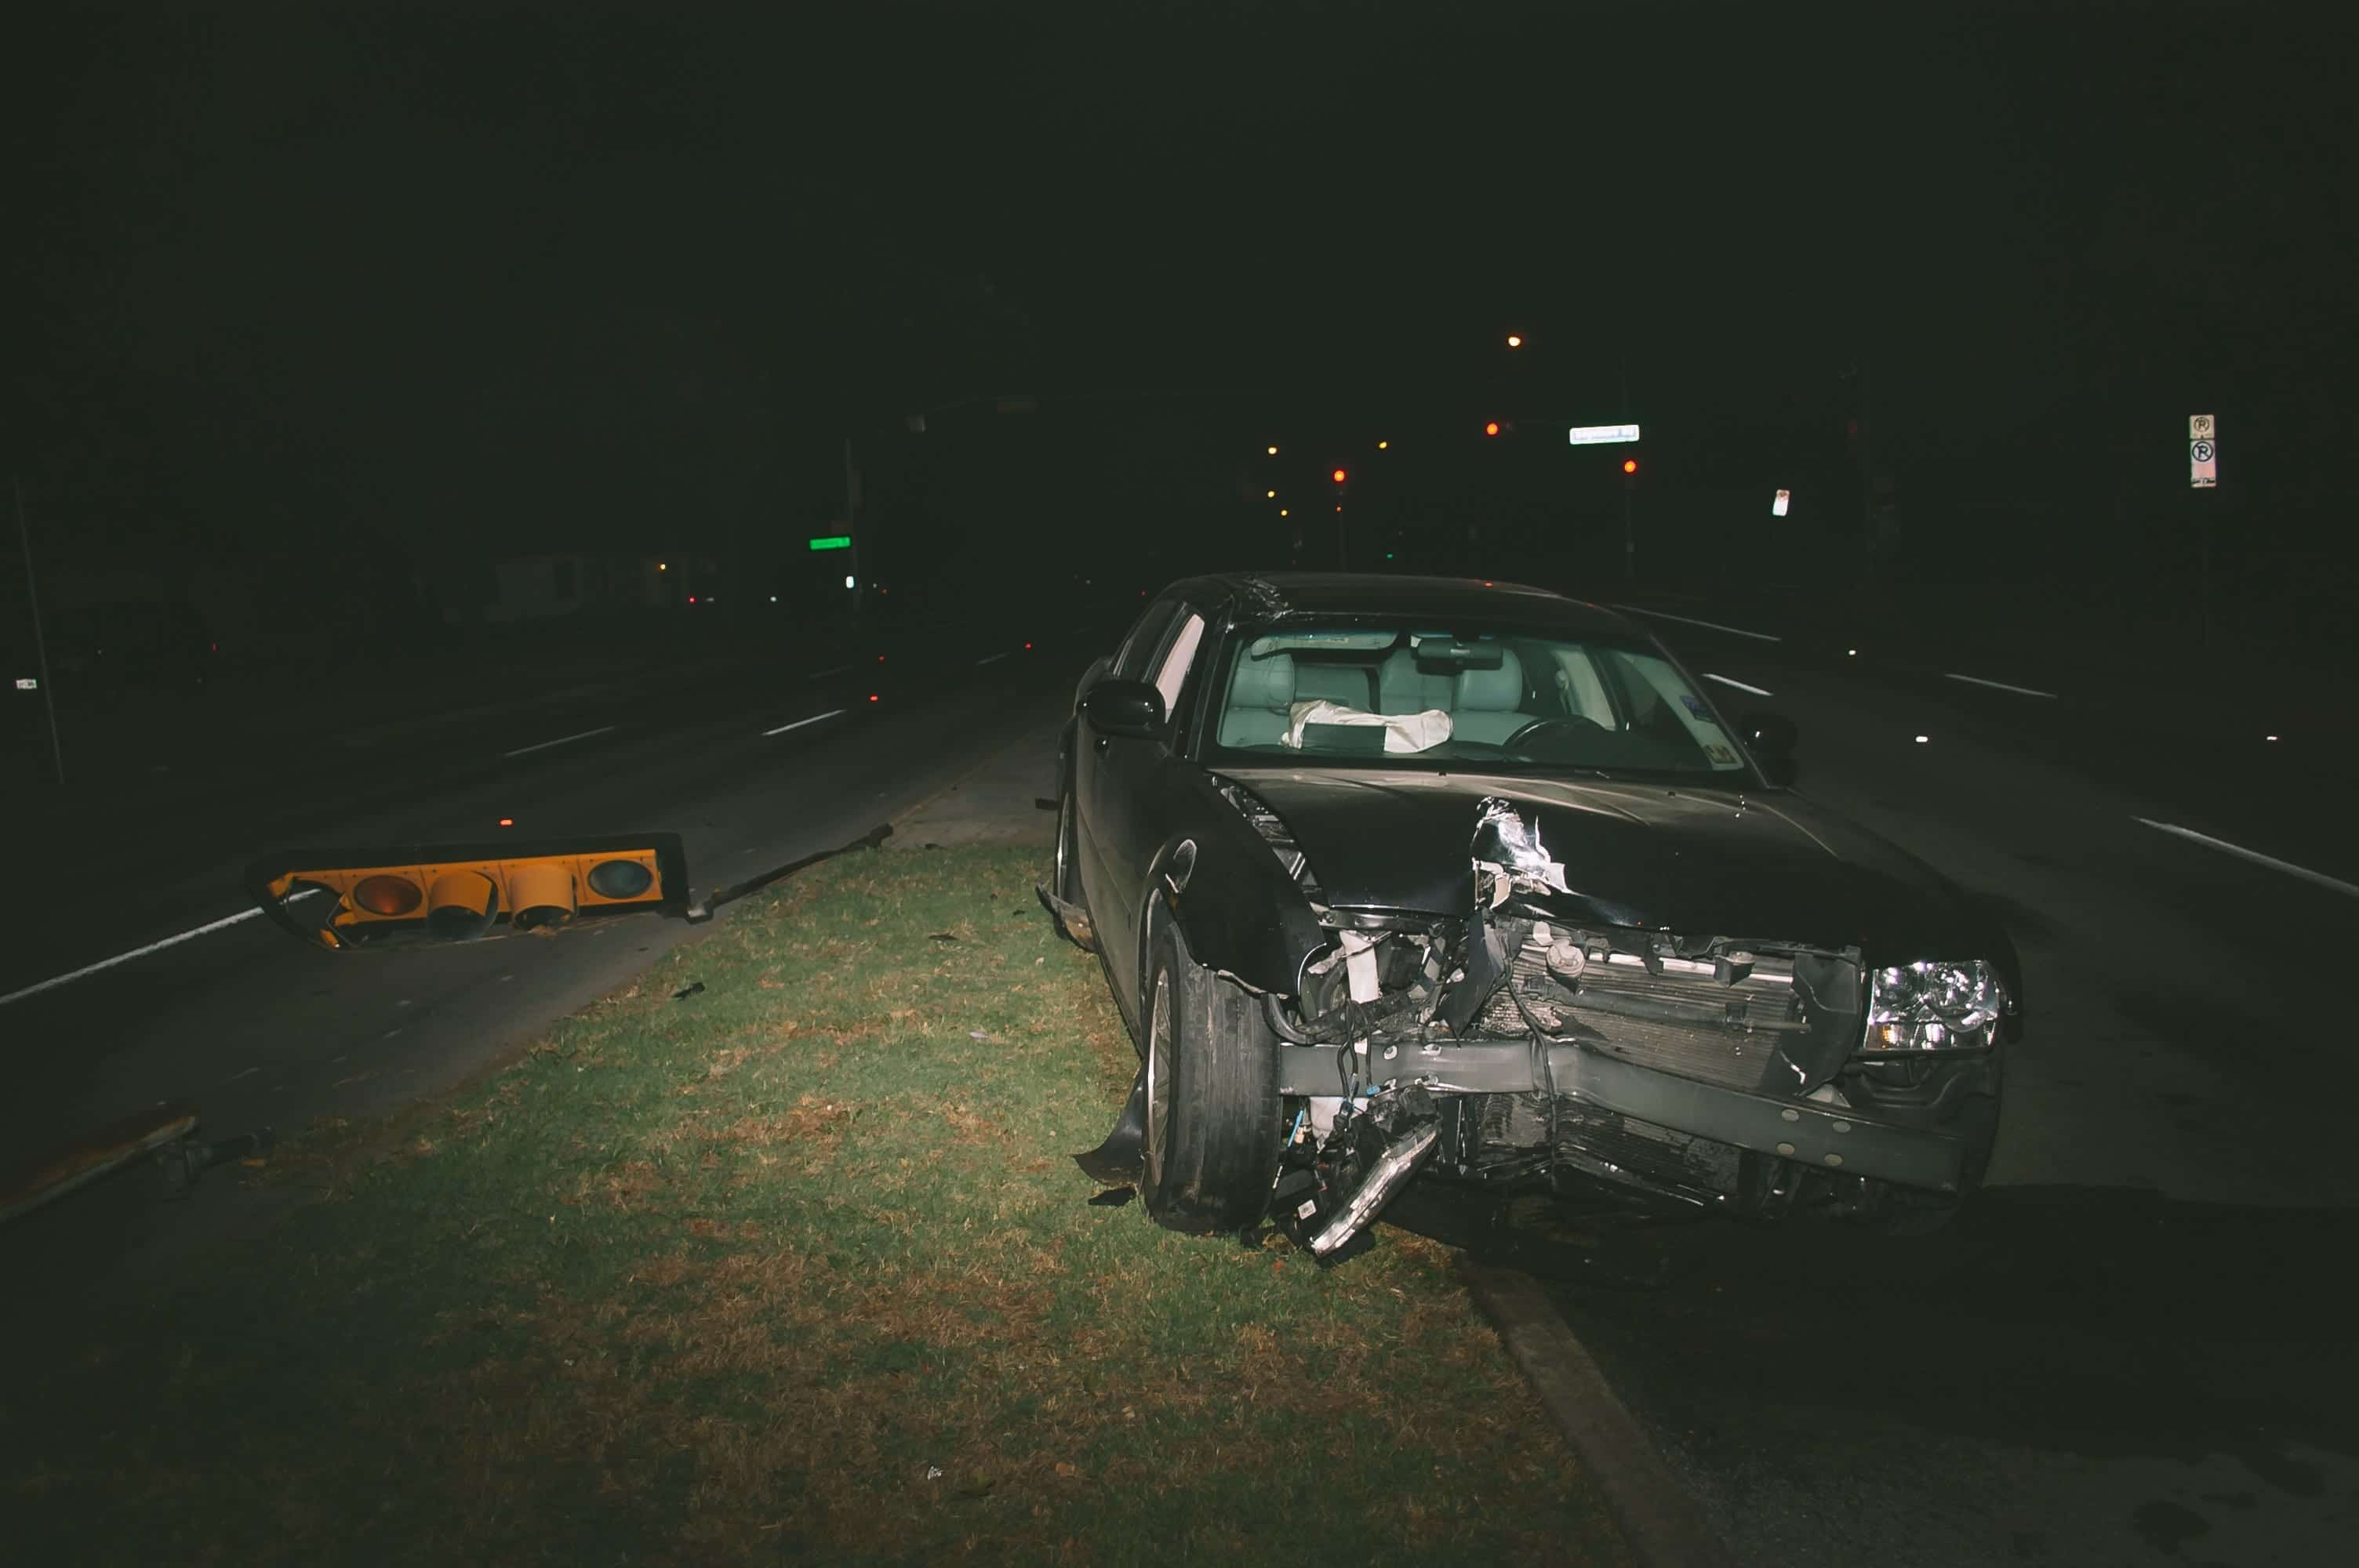 A wrecked black car on the road at night; image by Matthew T. Rader, via unsplash.com.